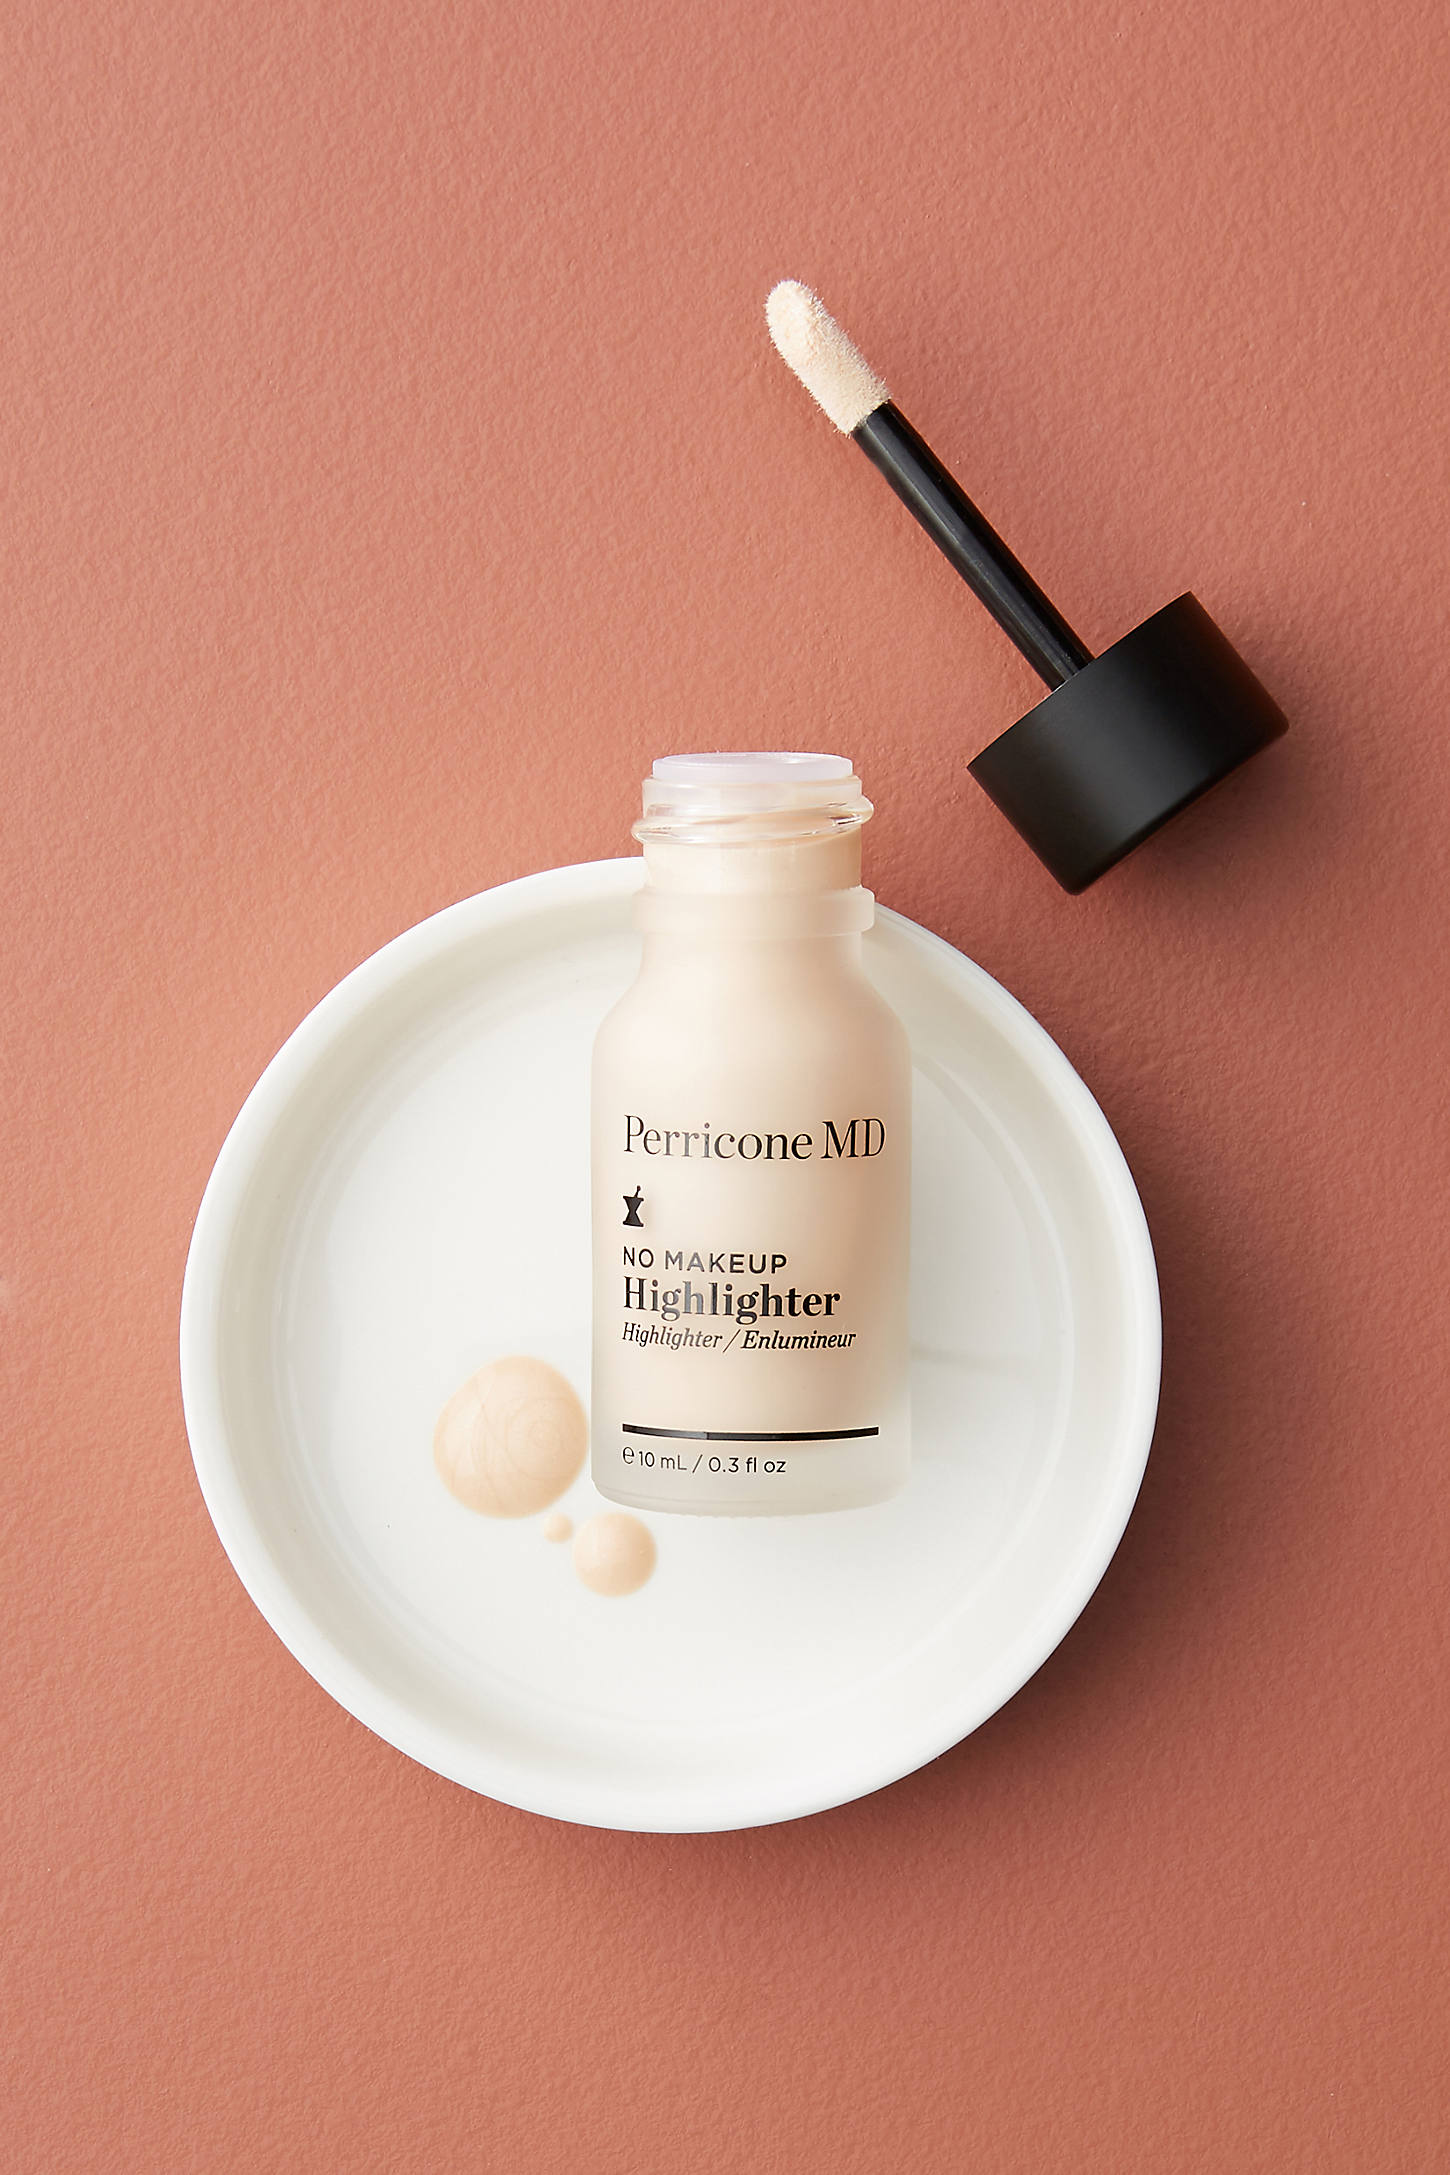 Perricone Md No Makeup Highlighter In White